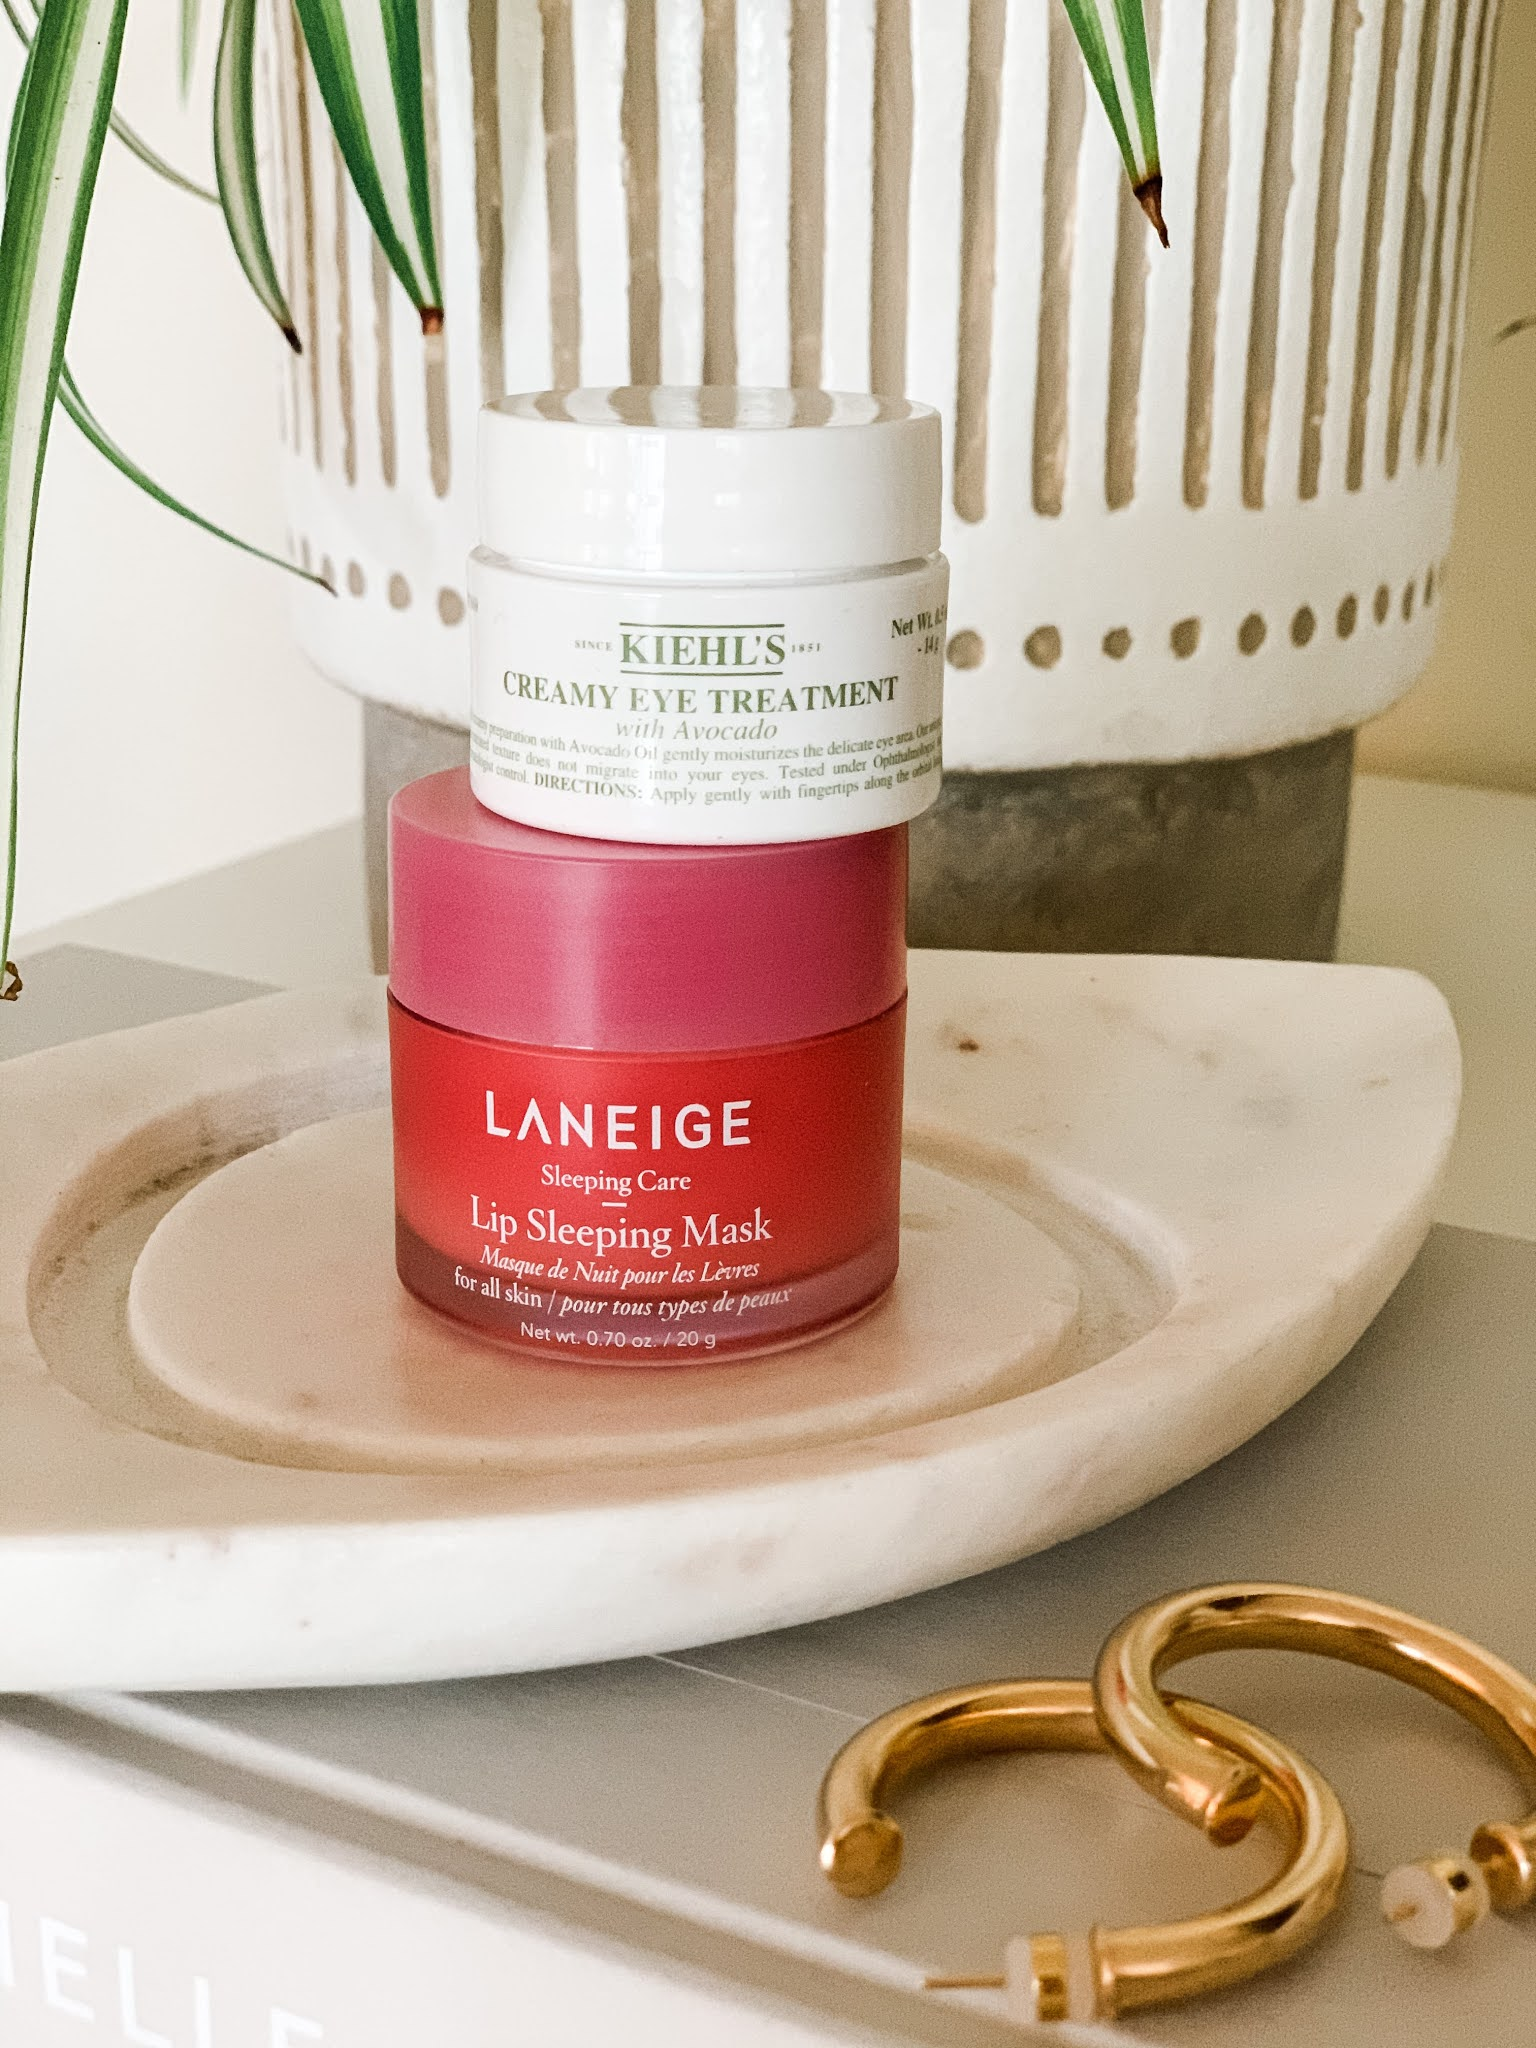 Laneige lip mask and Kiehl's eye cream